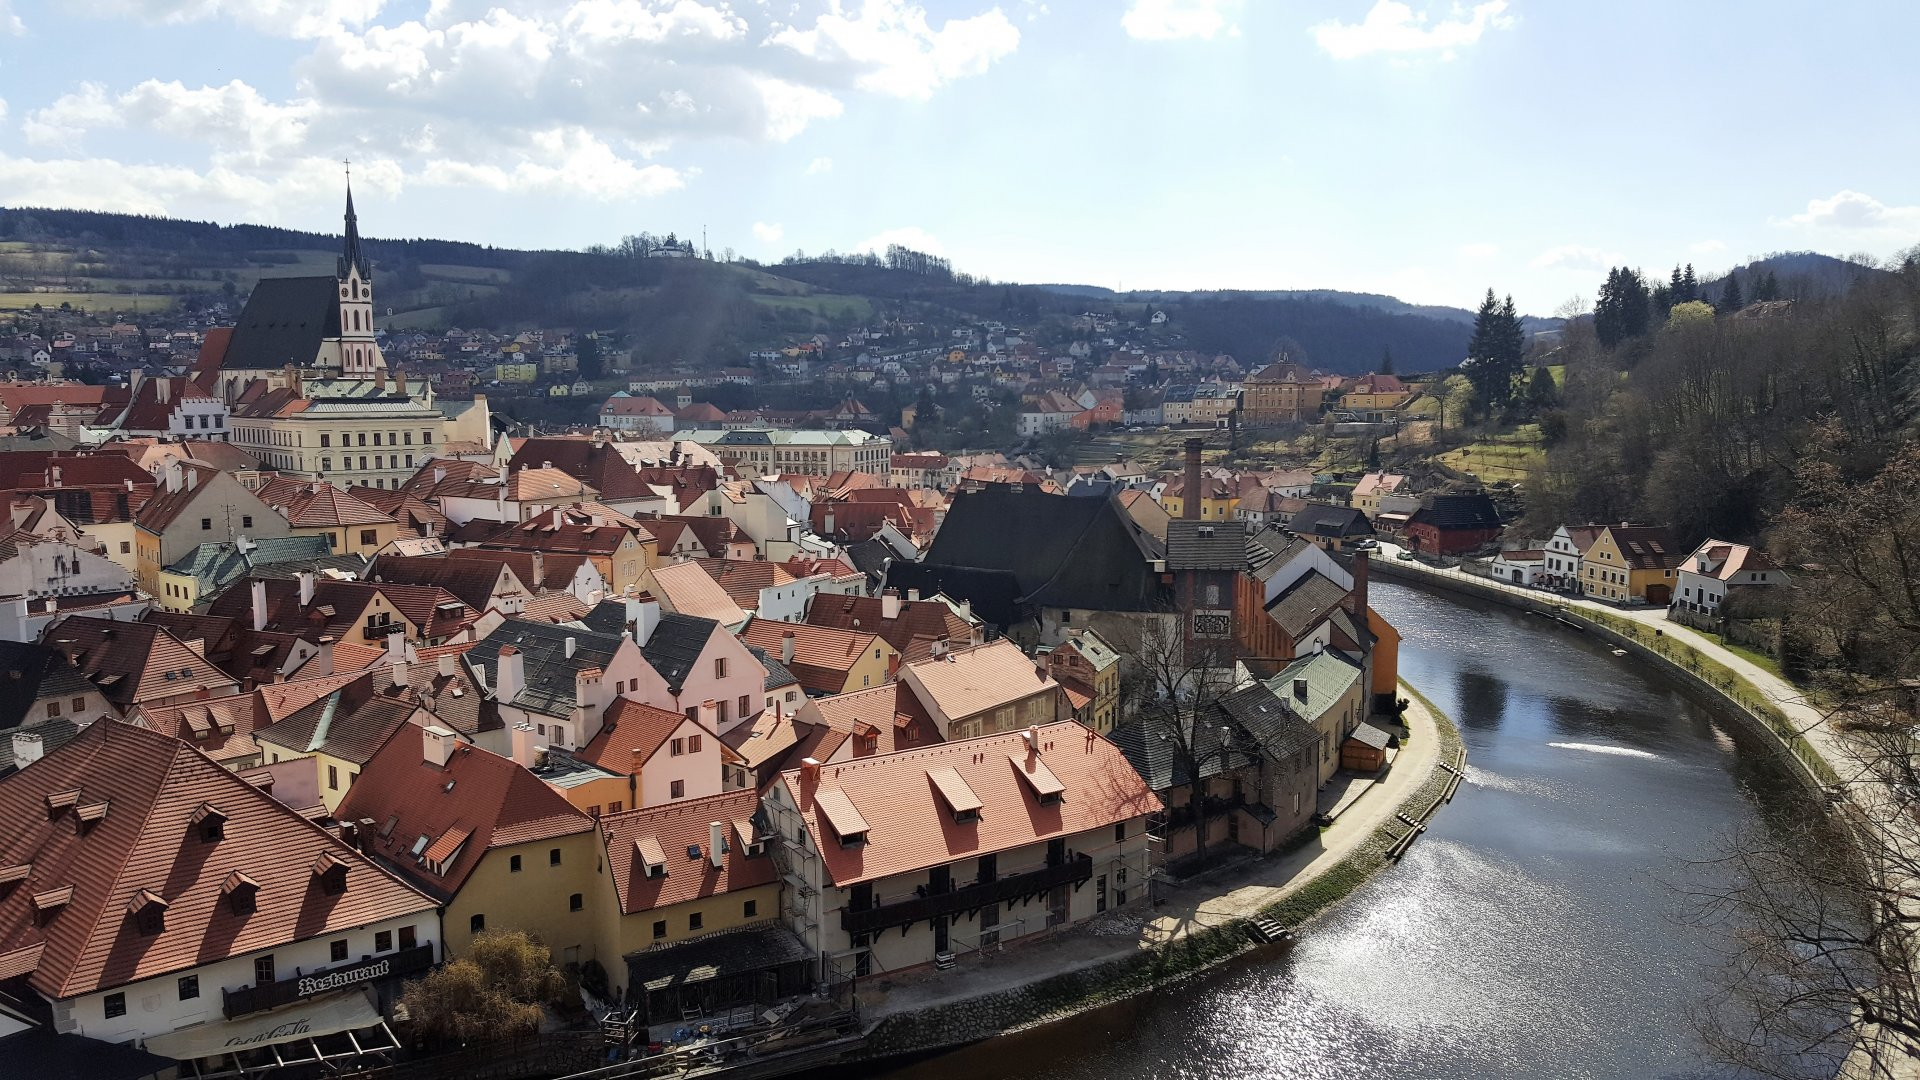 Take a time travel adventure back to the Middle Ages and visit Cesky Krumlov on a full-day small-group tour. ***Guaranteed departure with a minimum of 4 persons ***